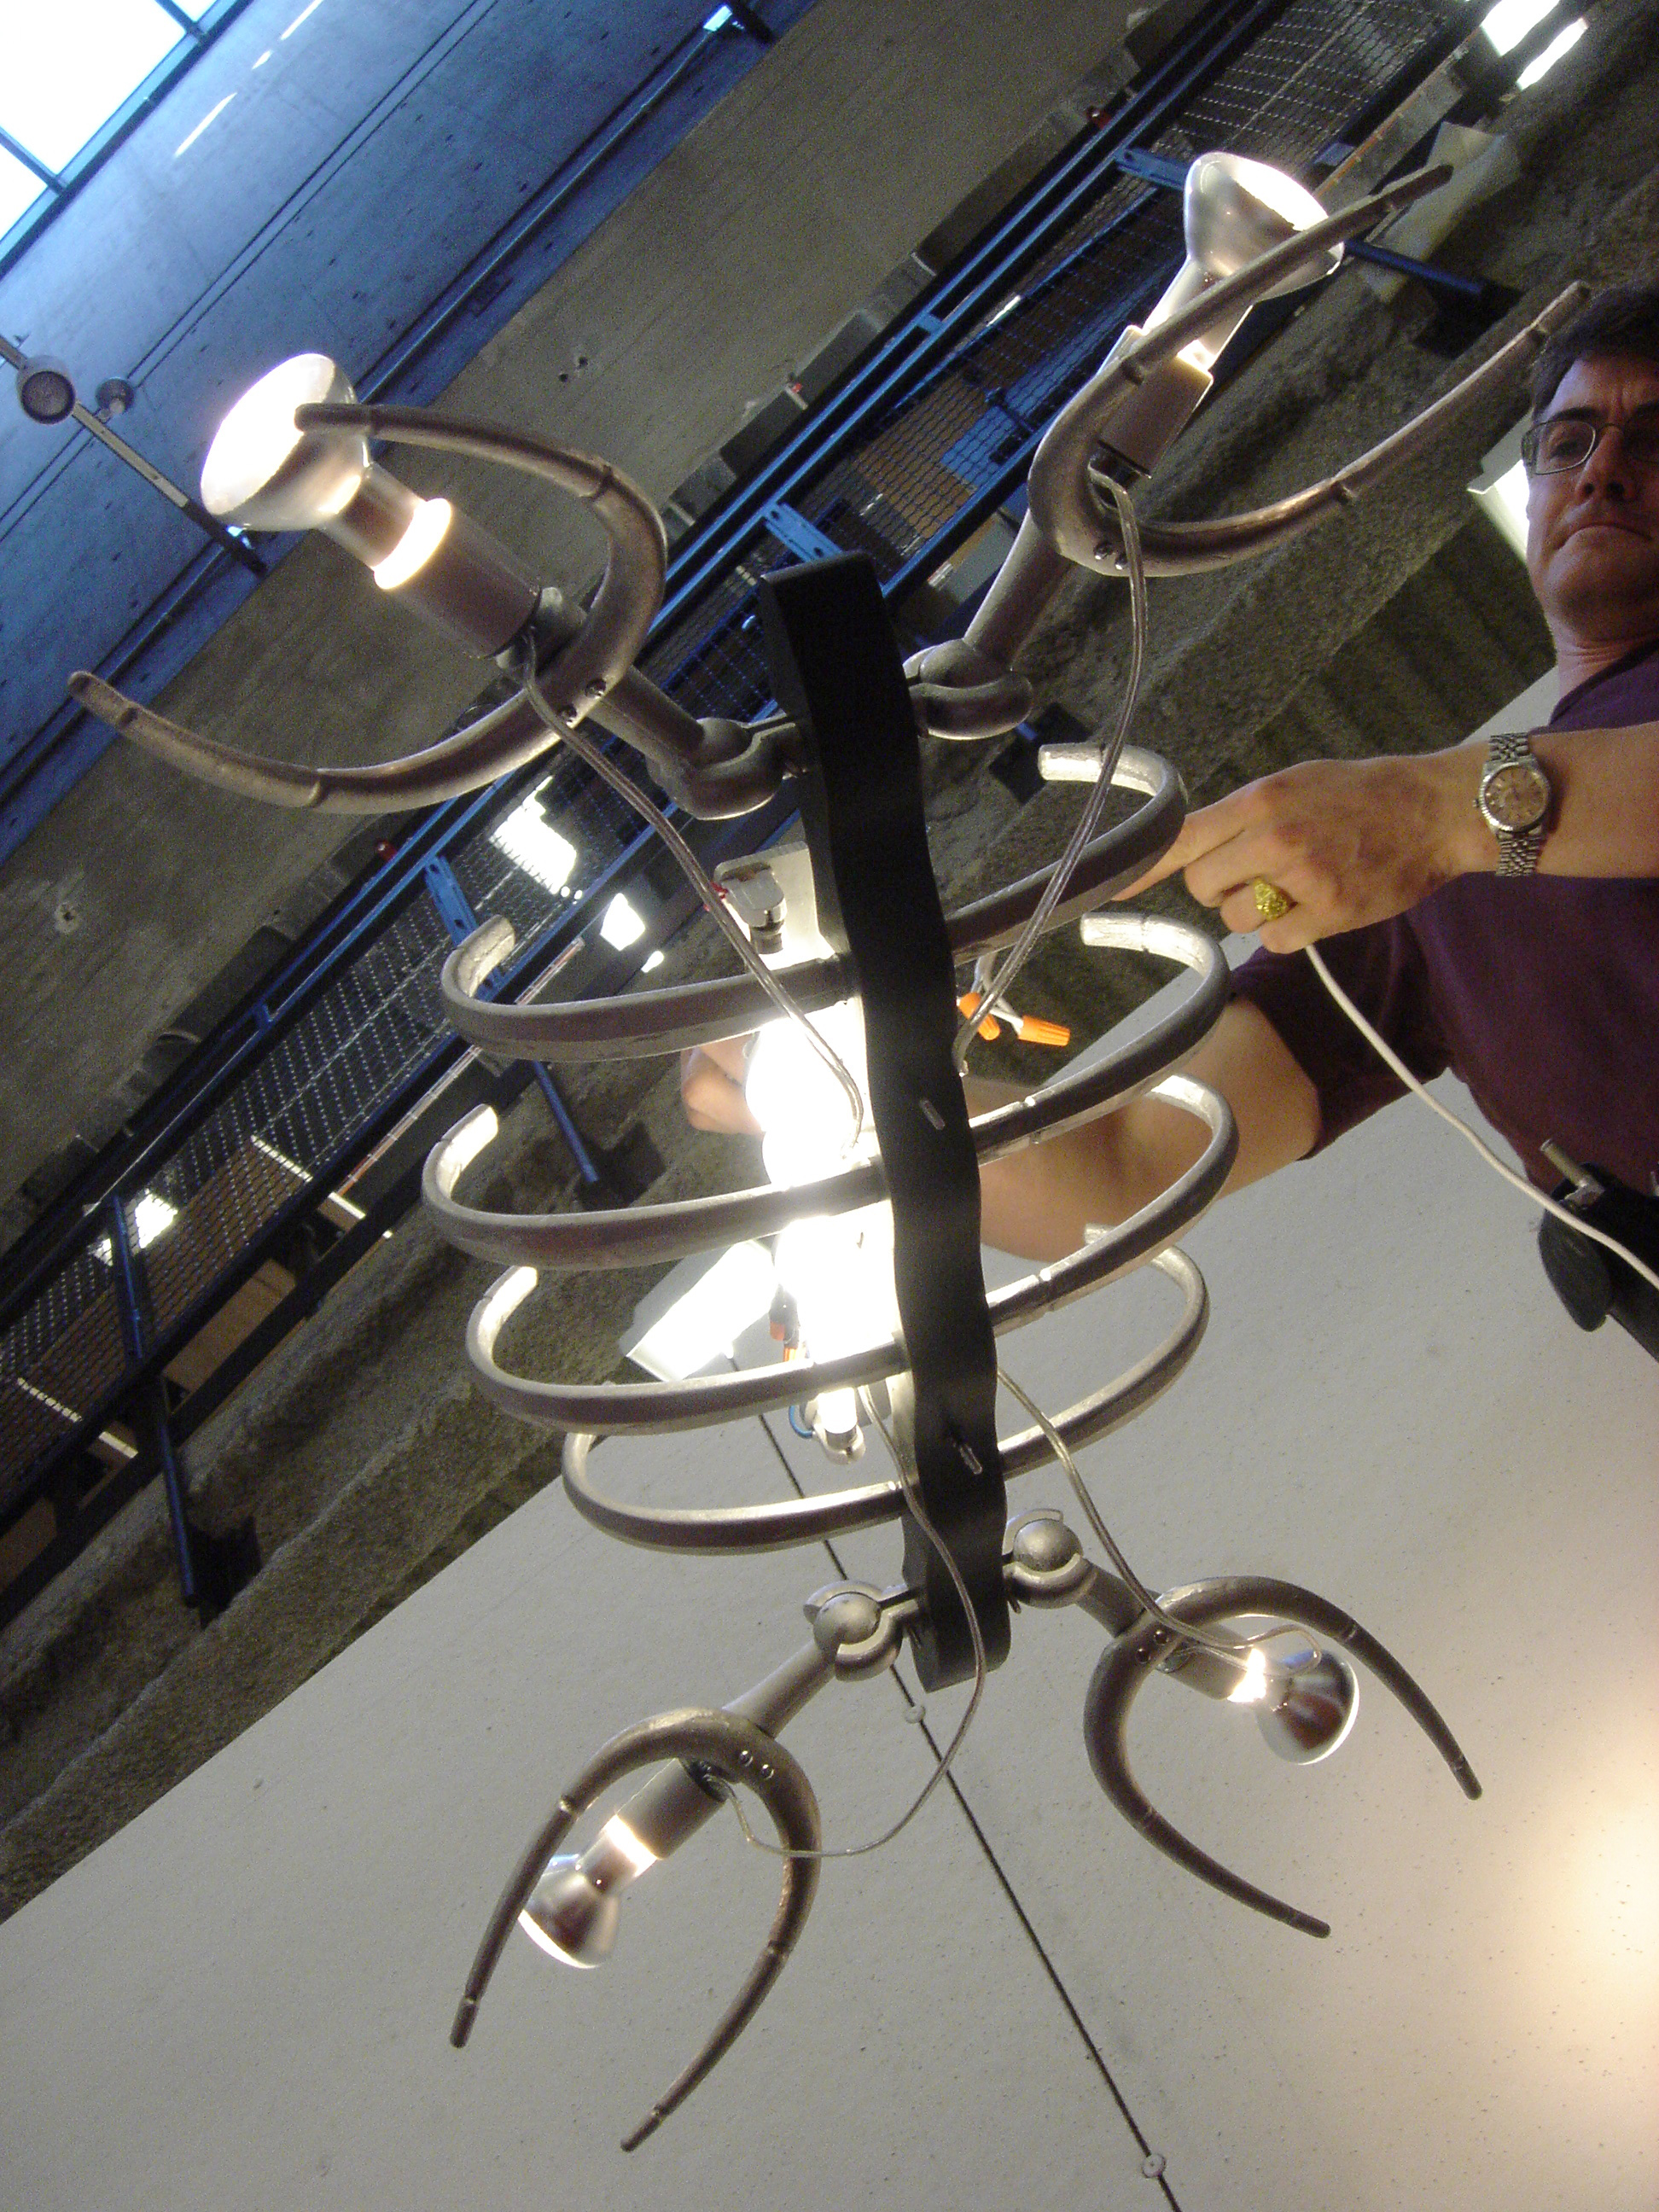 Plesiosaur light fixture, first assembly (2005)